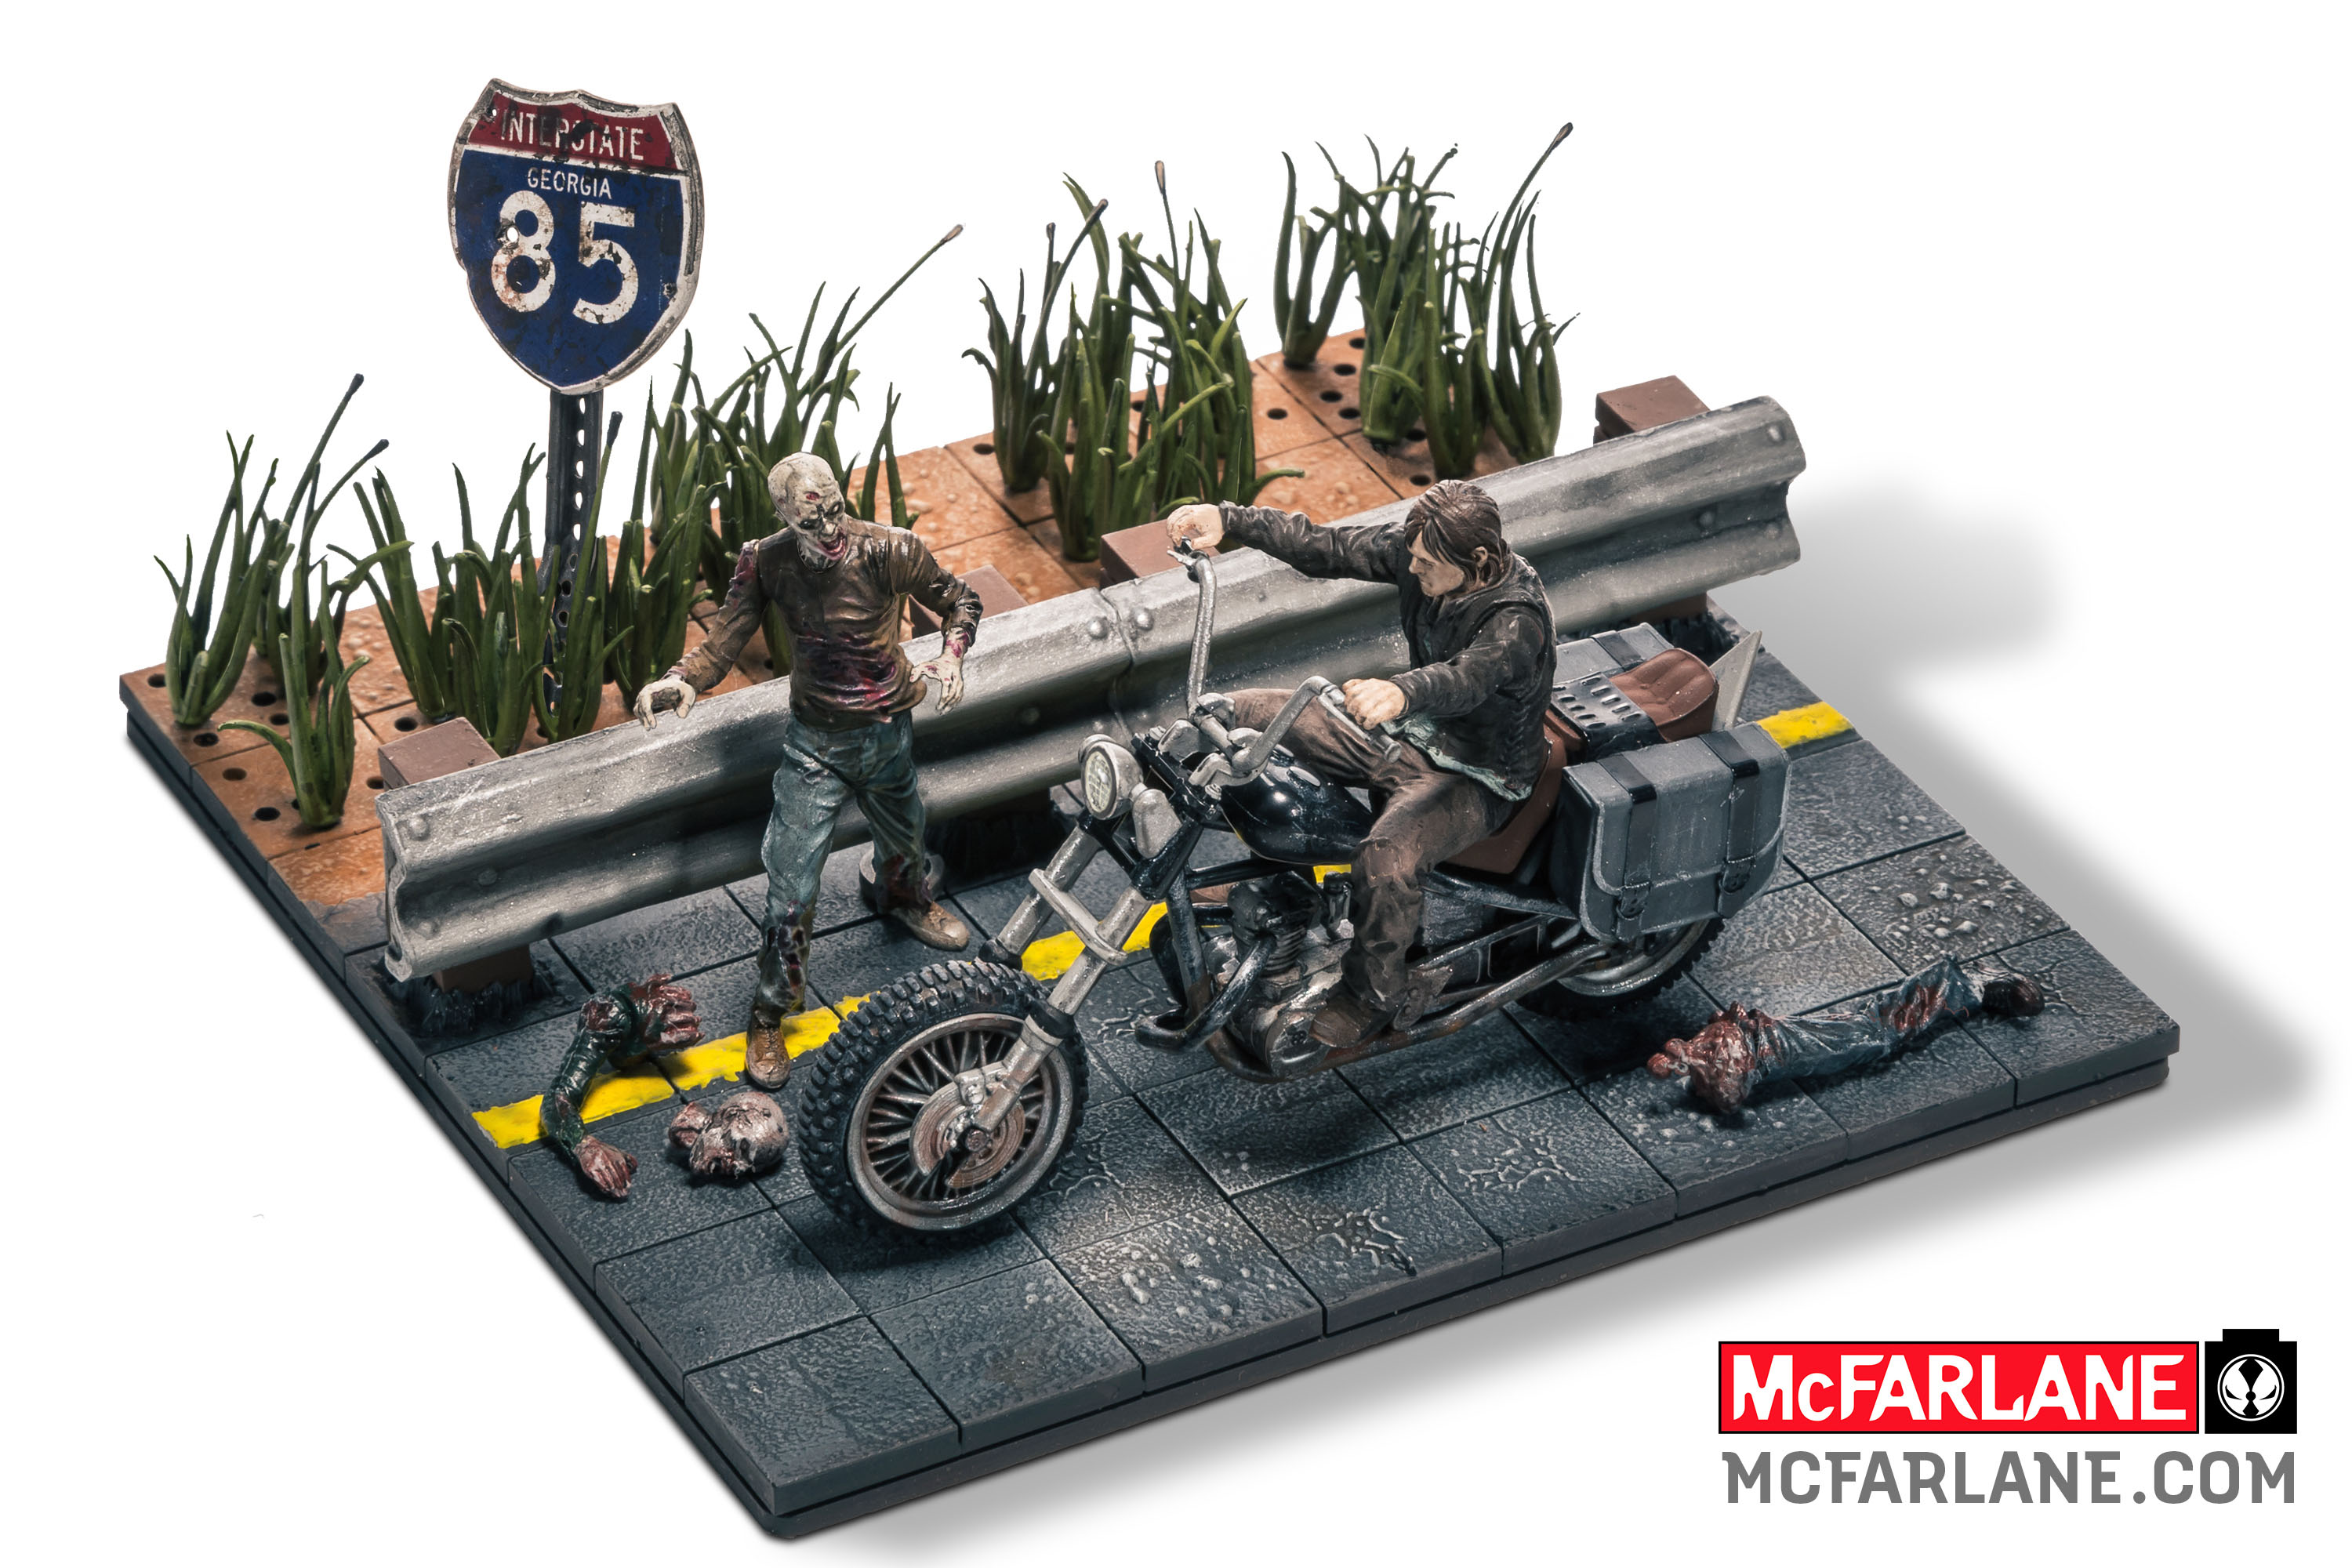 Walking dead lego daryl the walking - Mcfarlane Toys Launching The Walking Dead Building Block Sets Additional Images